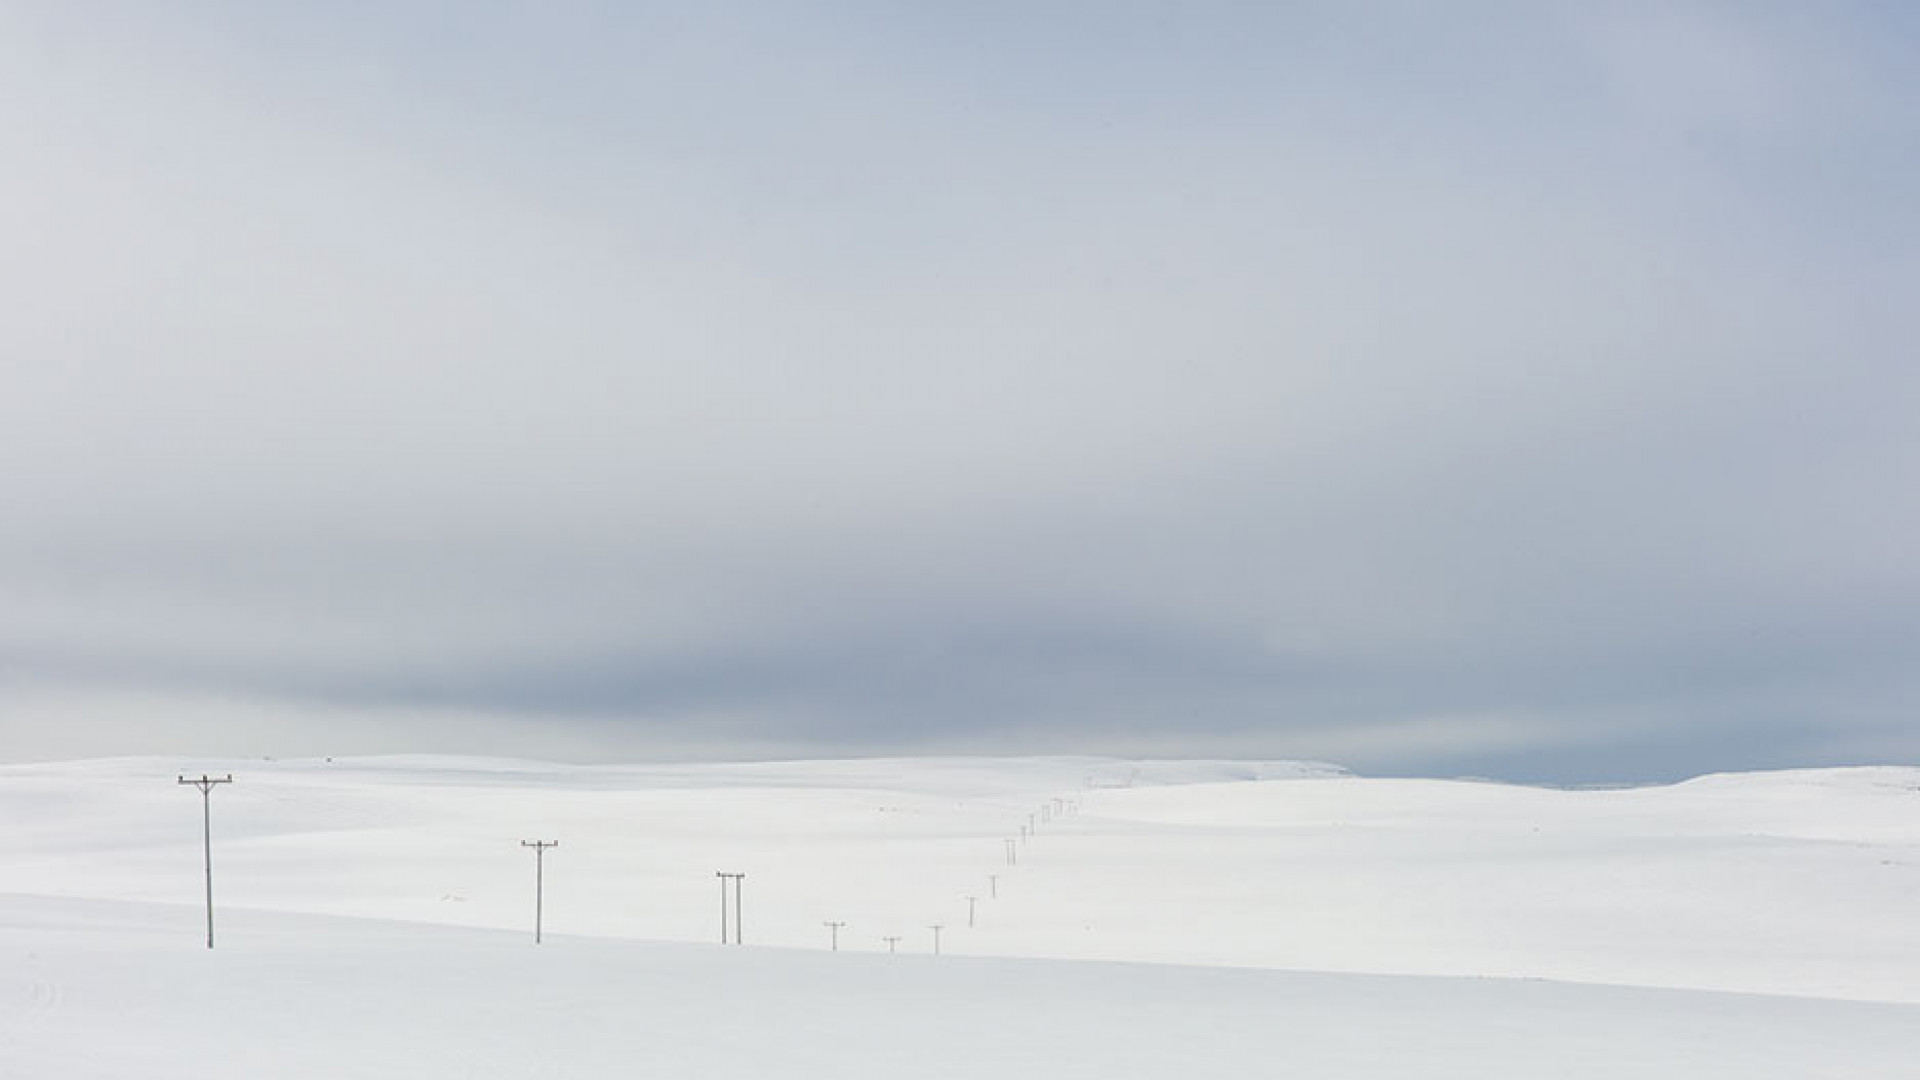 Power lines close to North Cape, Norway